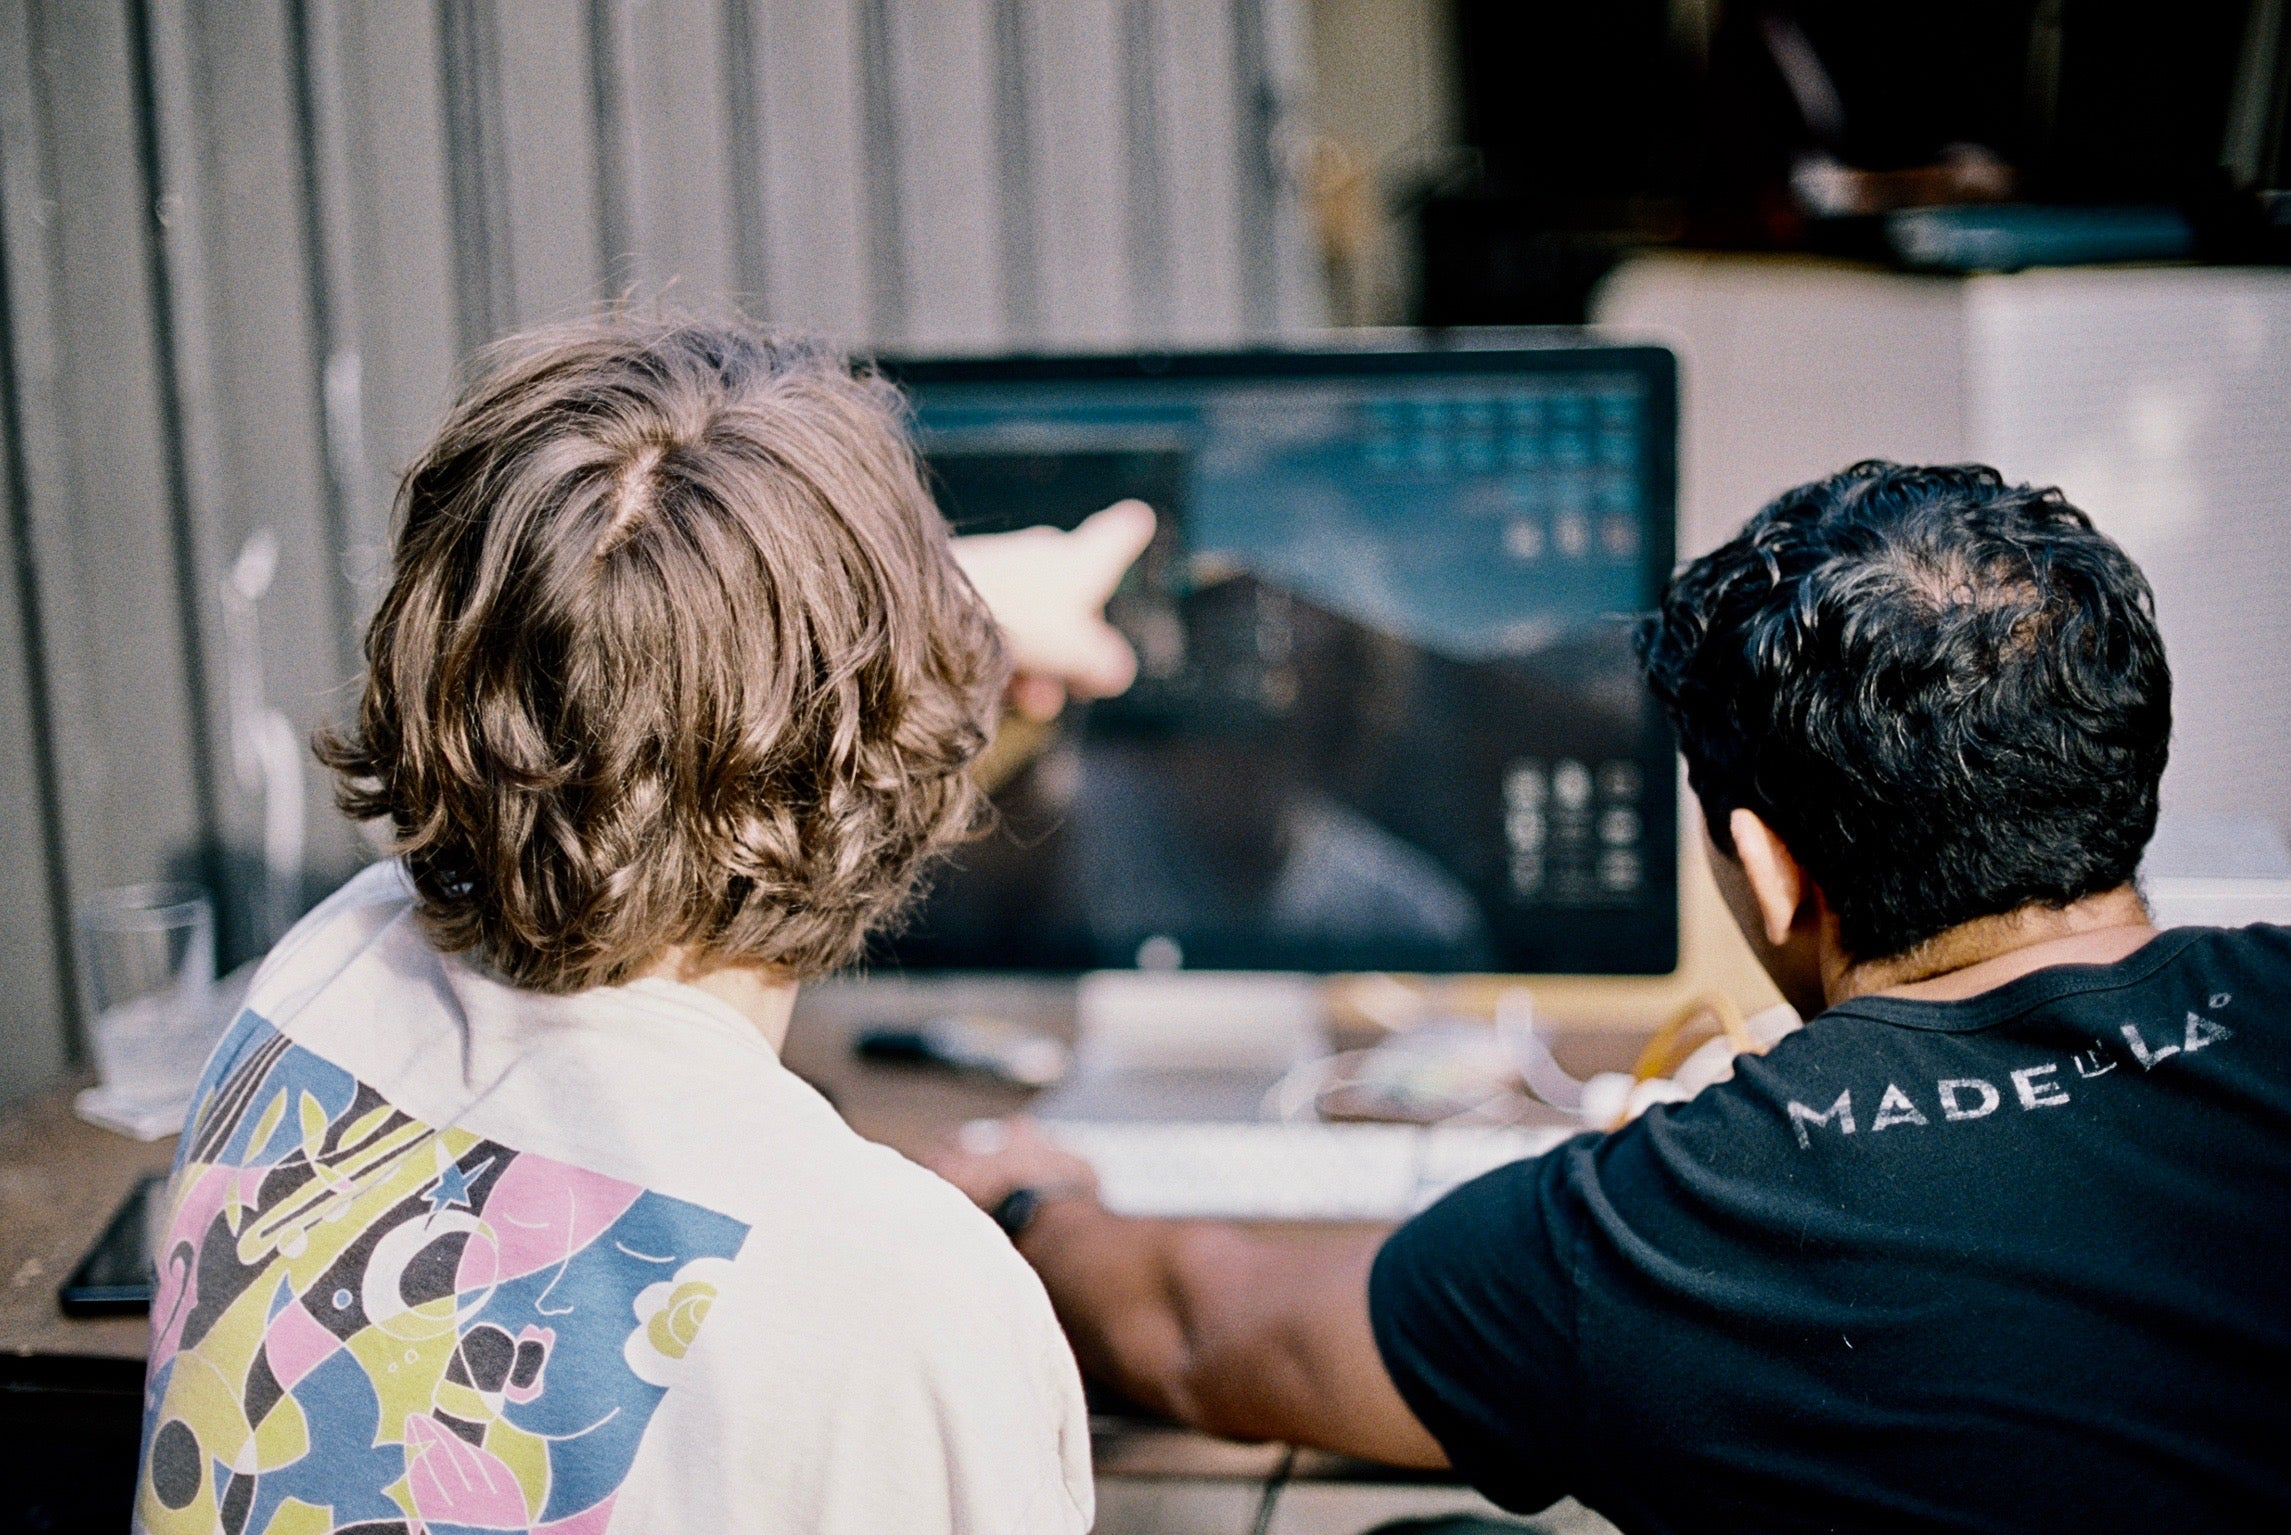 two men in front of a computer displaying music software.